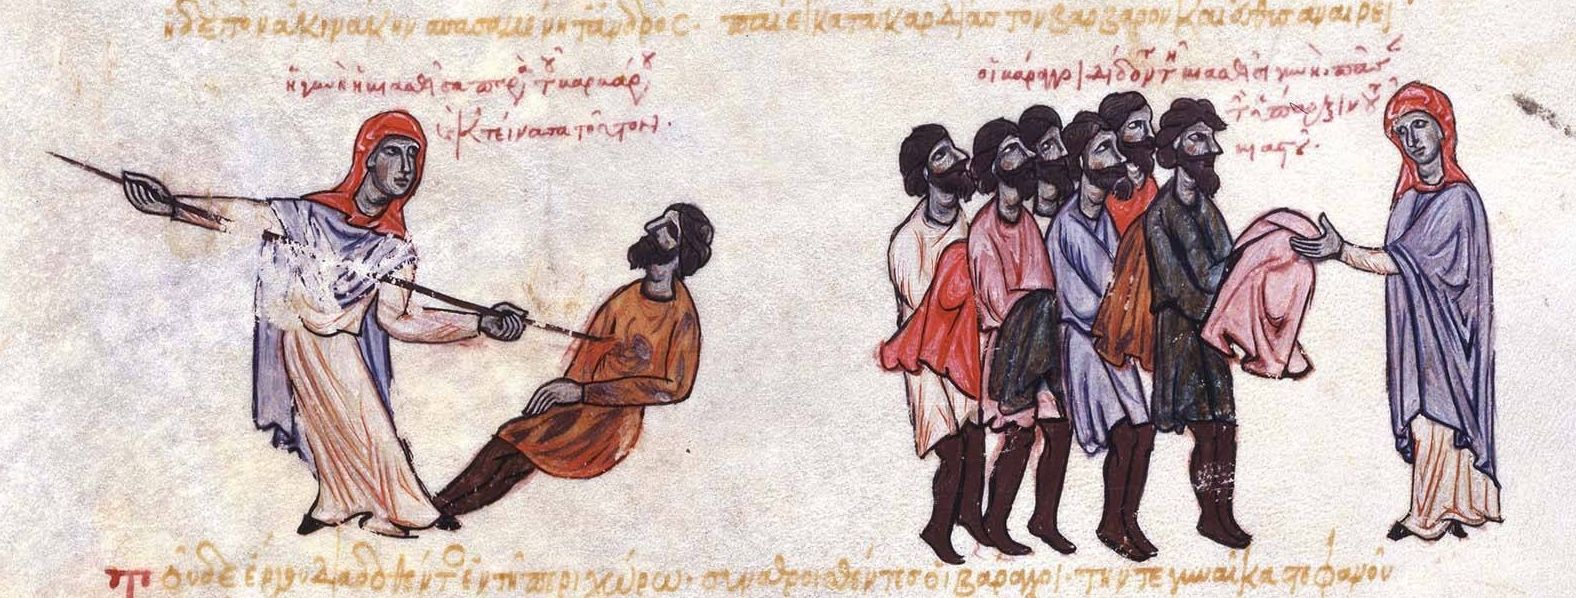 """An illumination of a scene from the Skylitzes Chronicle, depicting a Thracesian woman killing a Varangian who tried to rape her, whereupon his comrades praised her and gave her his possessions"" [Source: Varangian Guard - Wikipedia]"